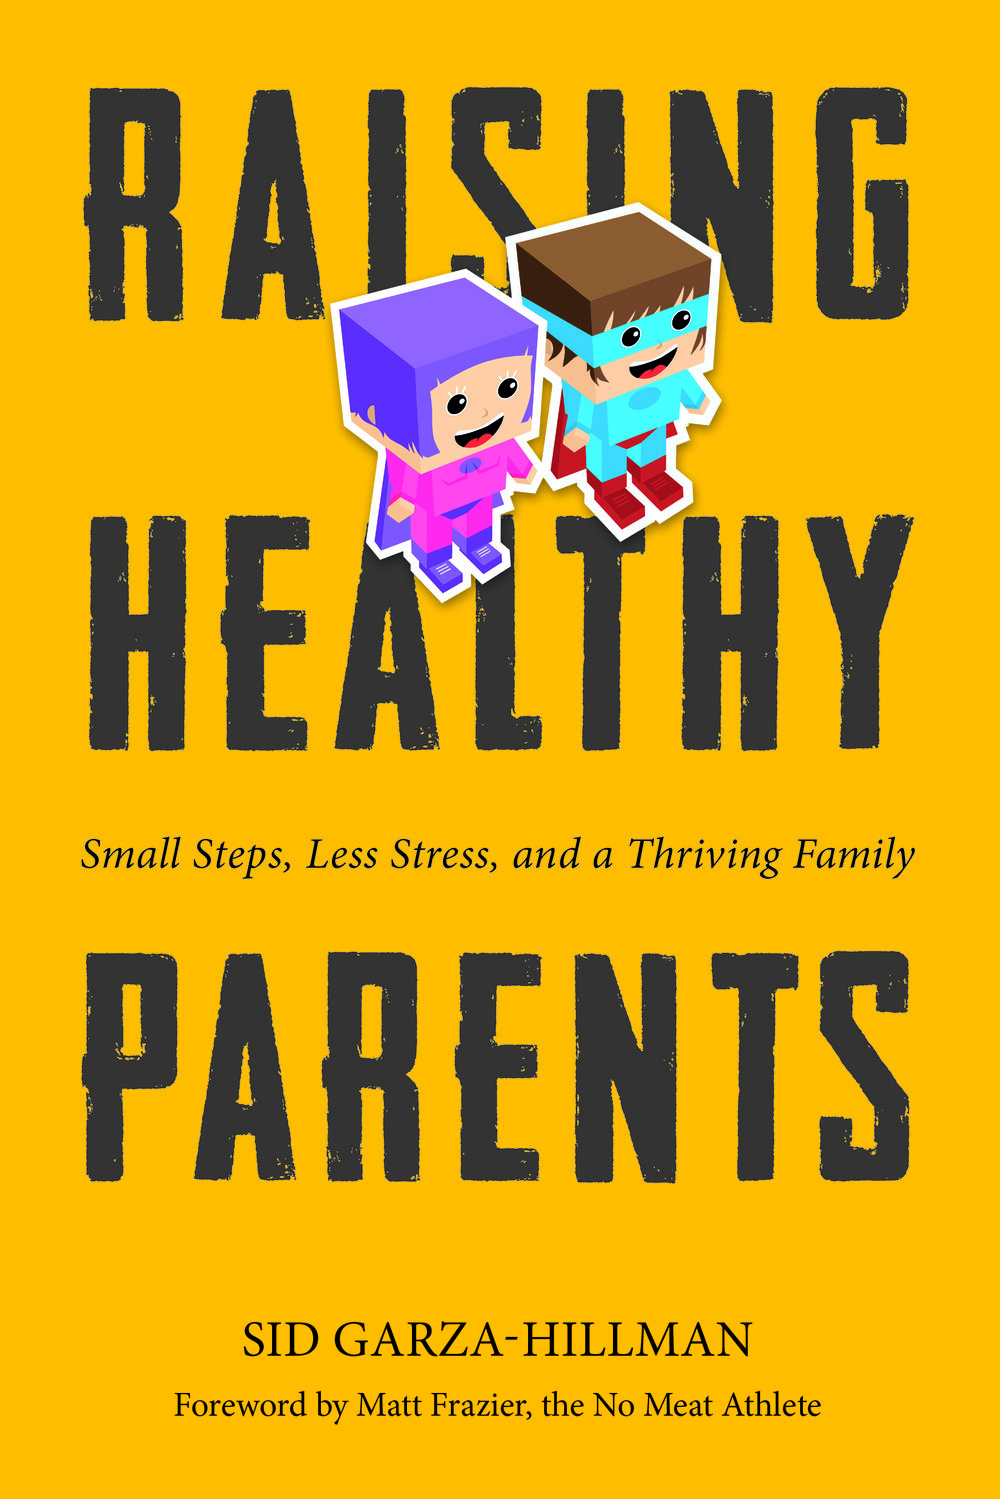 Raising Healthy Parents: Small Steps, Less Stress, and a Thriving Family - by Sid Garza-Hillman - This ain't your parents' parenting book.In parenting, there is a case to be made for putting your oxygen mask on first. This refreshingly humorous yet effective guide on the oh-so-serious business of parenting reminds us that being a successful parent means first being a successful human. Part philosophy, part implementation―including recipes, tips, and exercises―Sid Garza-Hillman's damn-is-it-tough-to-stay-happy-and-healthy-these-days resource is a must-have for anyone who is or will be a parent.In the complicated, fast-paced world of raising children, it is easy to forget that a family is really the sum of its parts. In Raising Healthy Parents: Small Steps, Less Stress, and a Thriving Family,Sid Garza-Hillman expounds on his premise that health and happiness, like the body and mind, are inextricably linked. And while this book is essentially about perfecting the imperfect art of parenting, Garza-Hillman puts the focus squarely on the individual. Equal parts philosophy and reality, this edgy and humorous guide to parenting offers simple, life-altering steps that will bring wellness and harmony to the parent, and, as a result, the whole family .Raising Healthy Parents contains easy-to-do tasks, lessons, resources and simple recipes, but it is much more than a simple to-do list. As parents explore themselves, their forgotten dreams, their abandoned passions, Garza-Hillman will show them that easing into healthy choices will benefit them, their spouses, and most important, their children. And because there is no one-size-fits-all approach to parenting, the specific needs and motivations of each family dictate the size and frequency of Garza-Hillman's Small Steps. This book provides the basic principles on how to live your best life and make happiness, low stress, low conflict, and fun the starting point for a life-long endeavor.